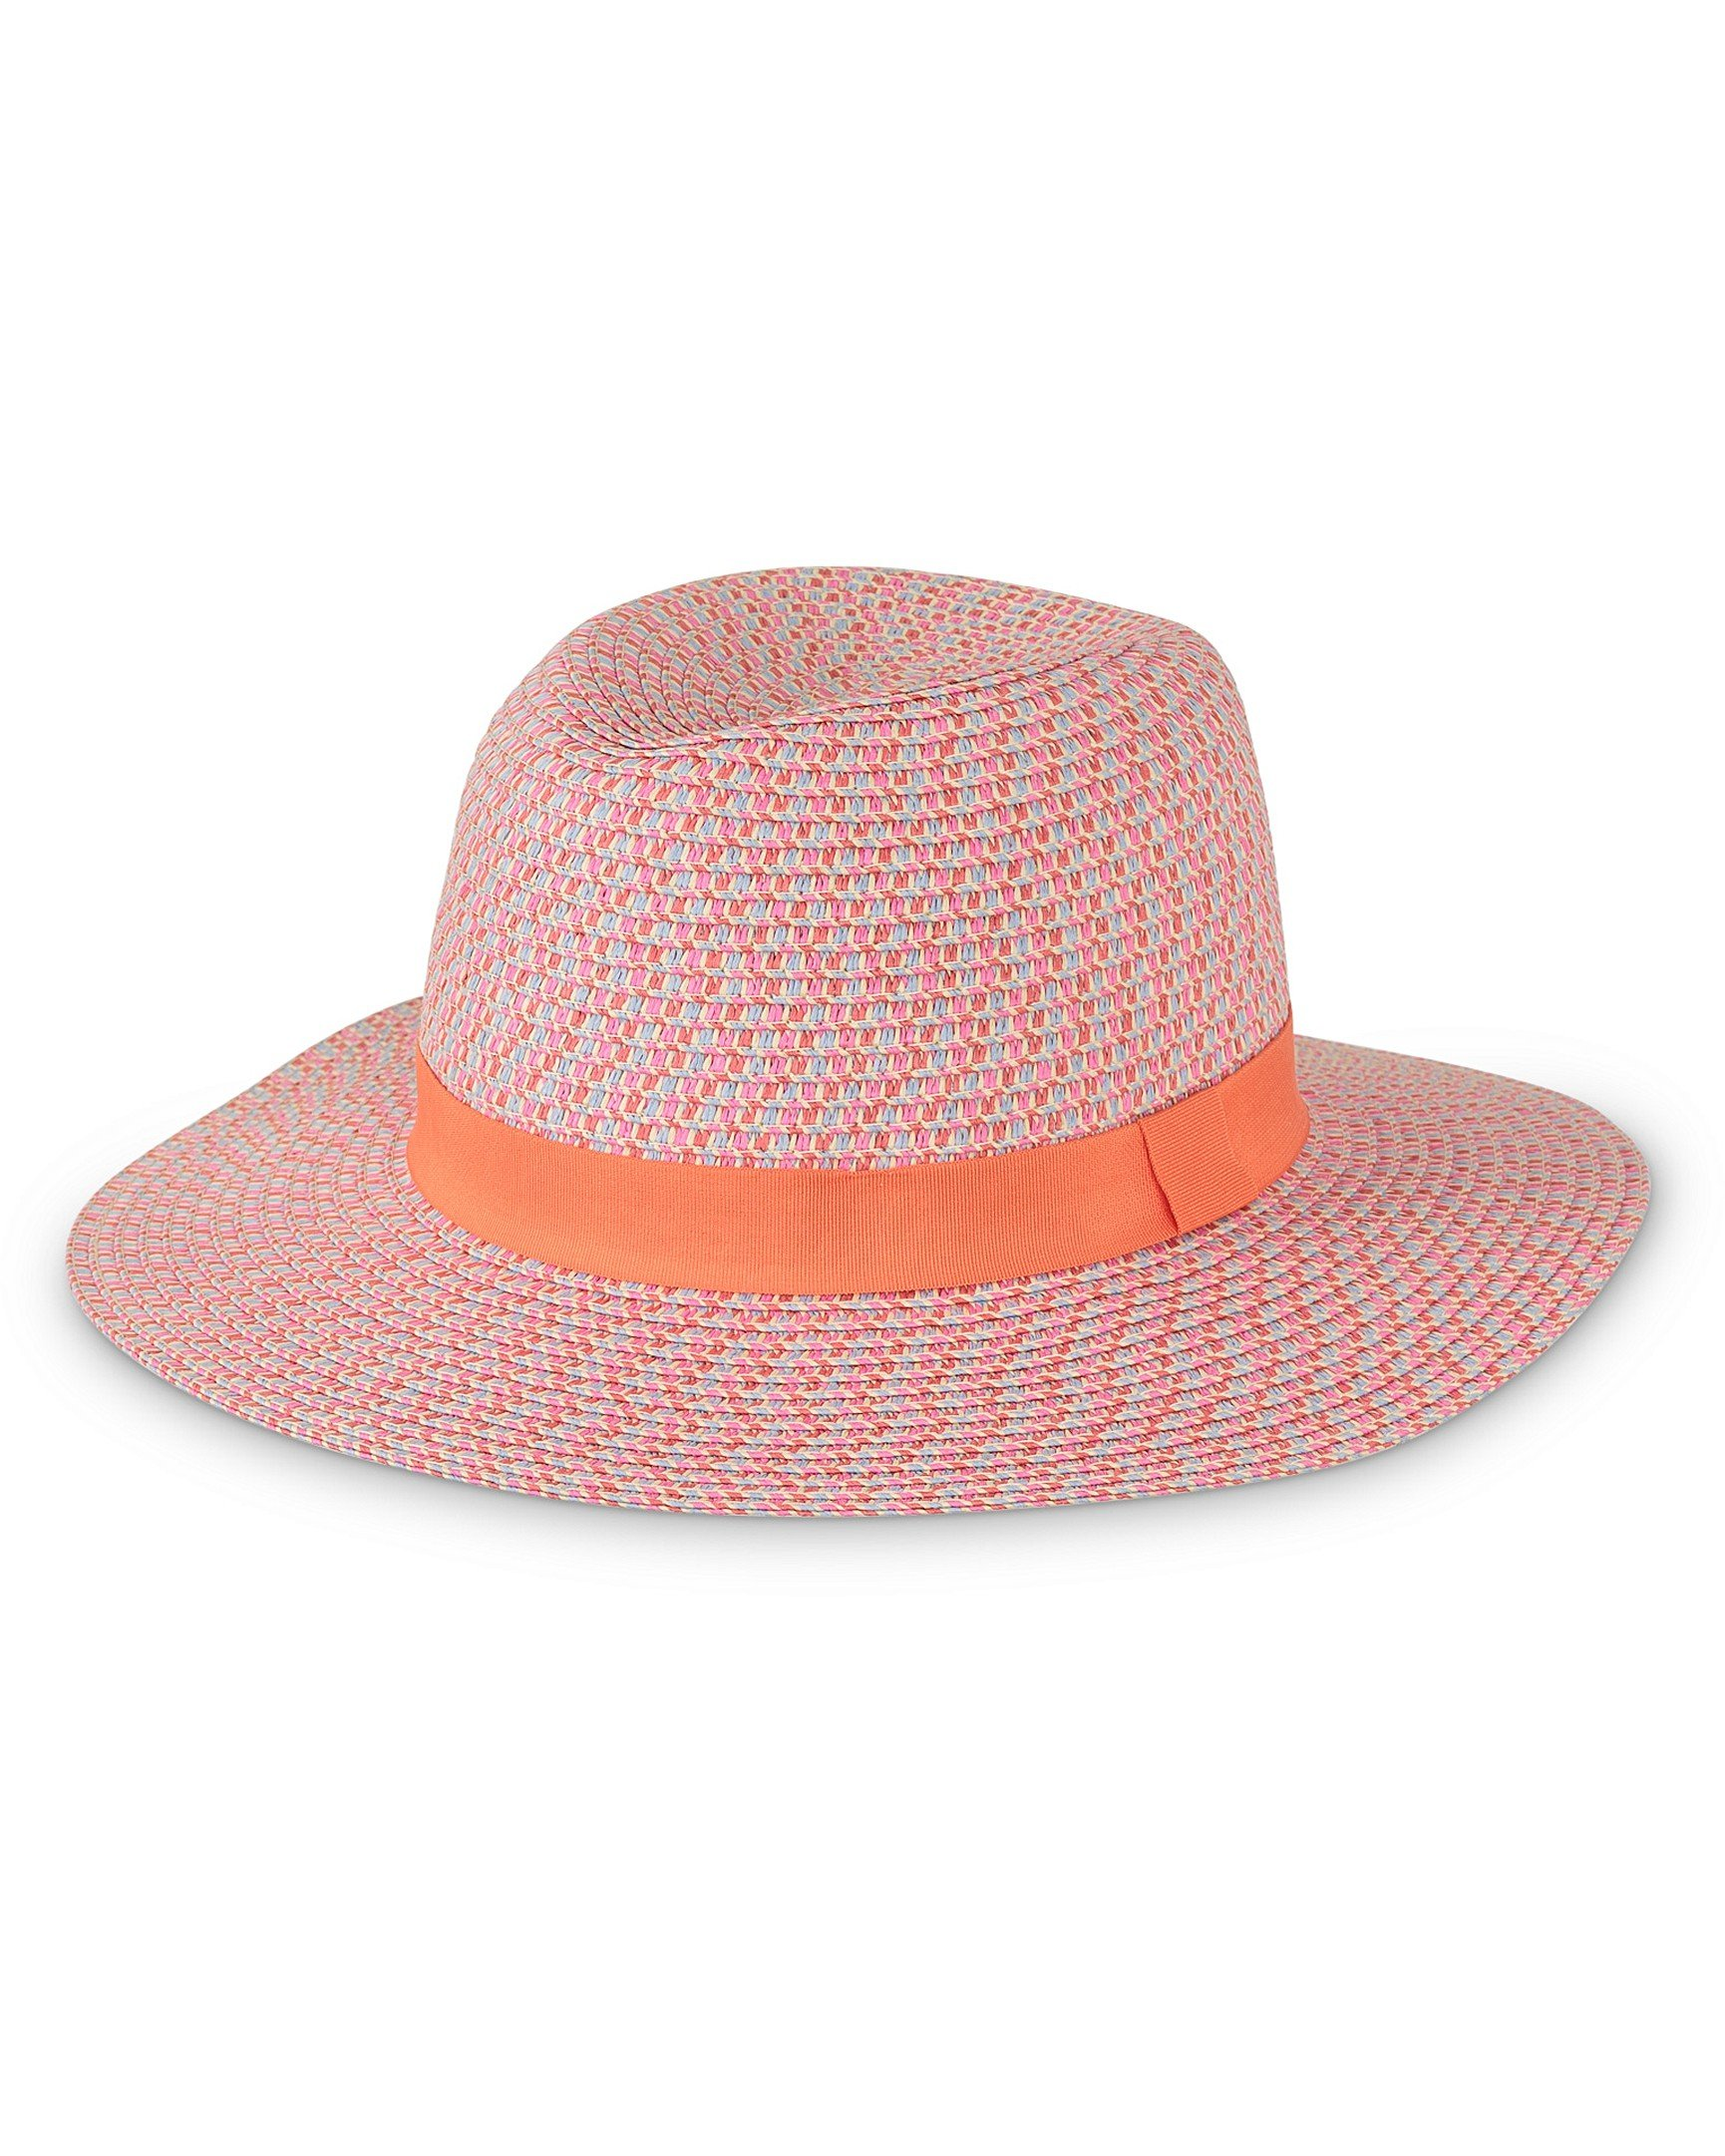 279aea06450 Rainbow Twist Pink Fedora Hat